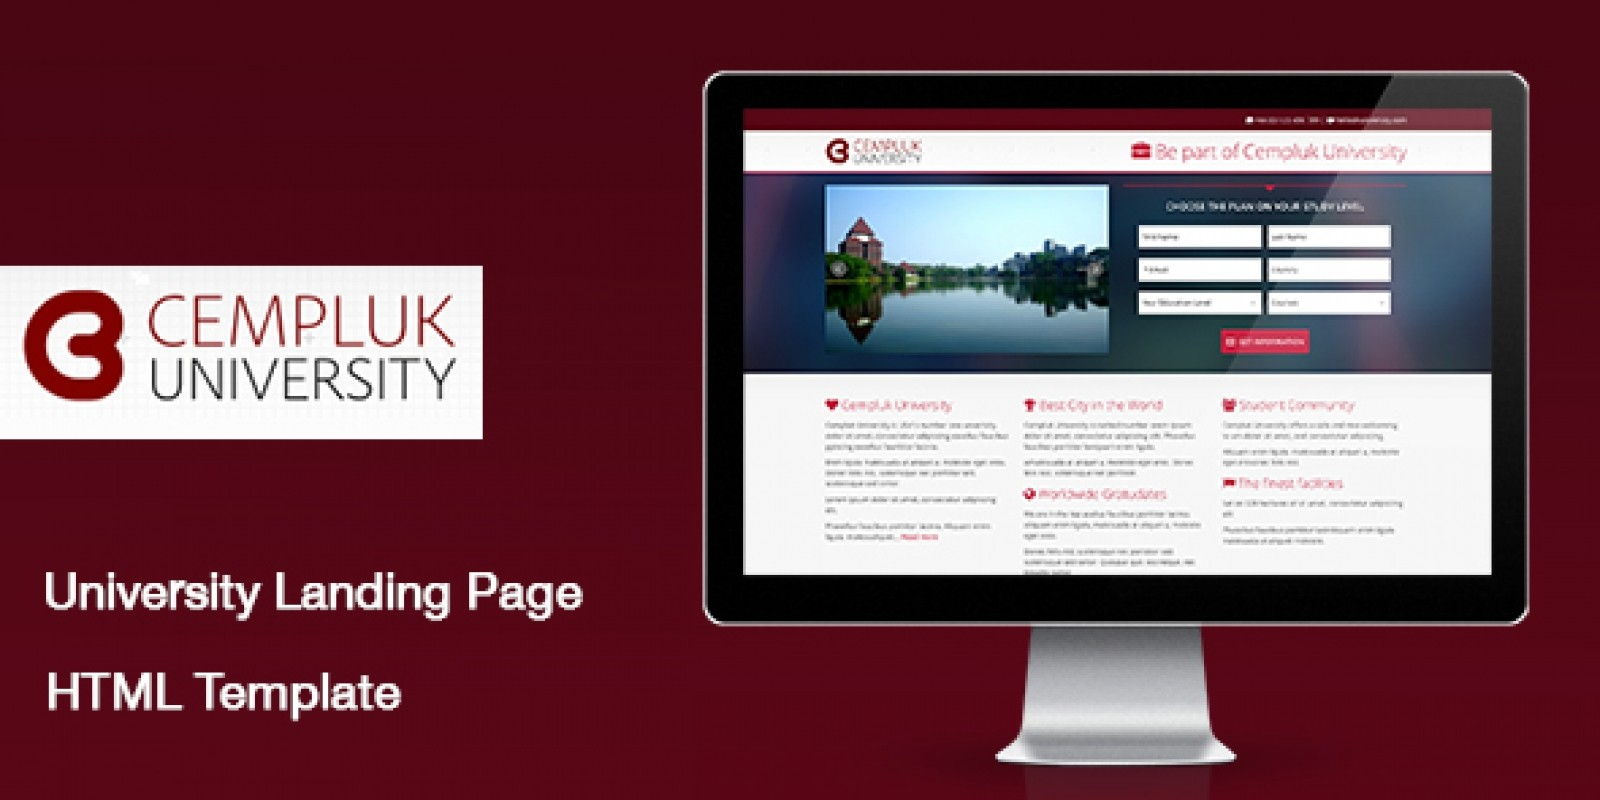 CEMPLUK University Landing Page HTML Template HTML Education - Landing page html template